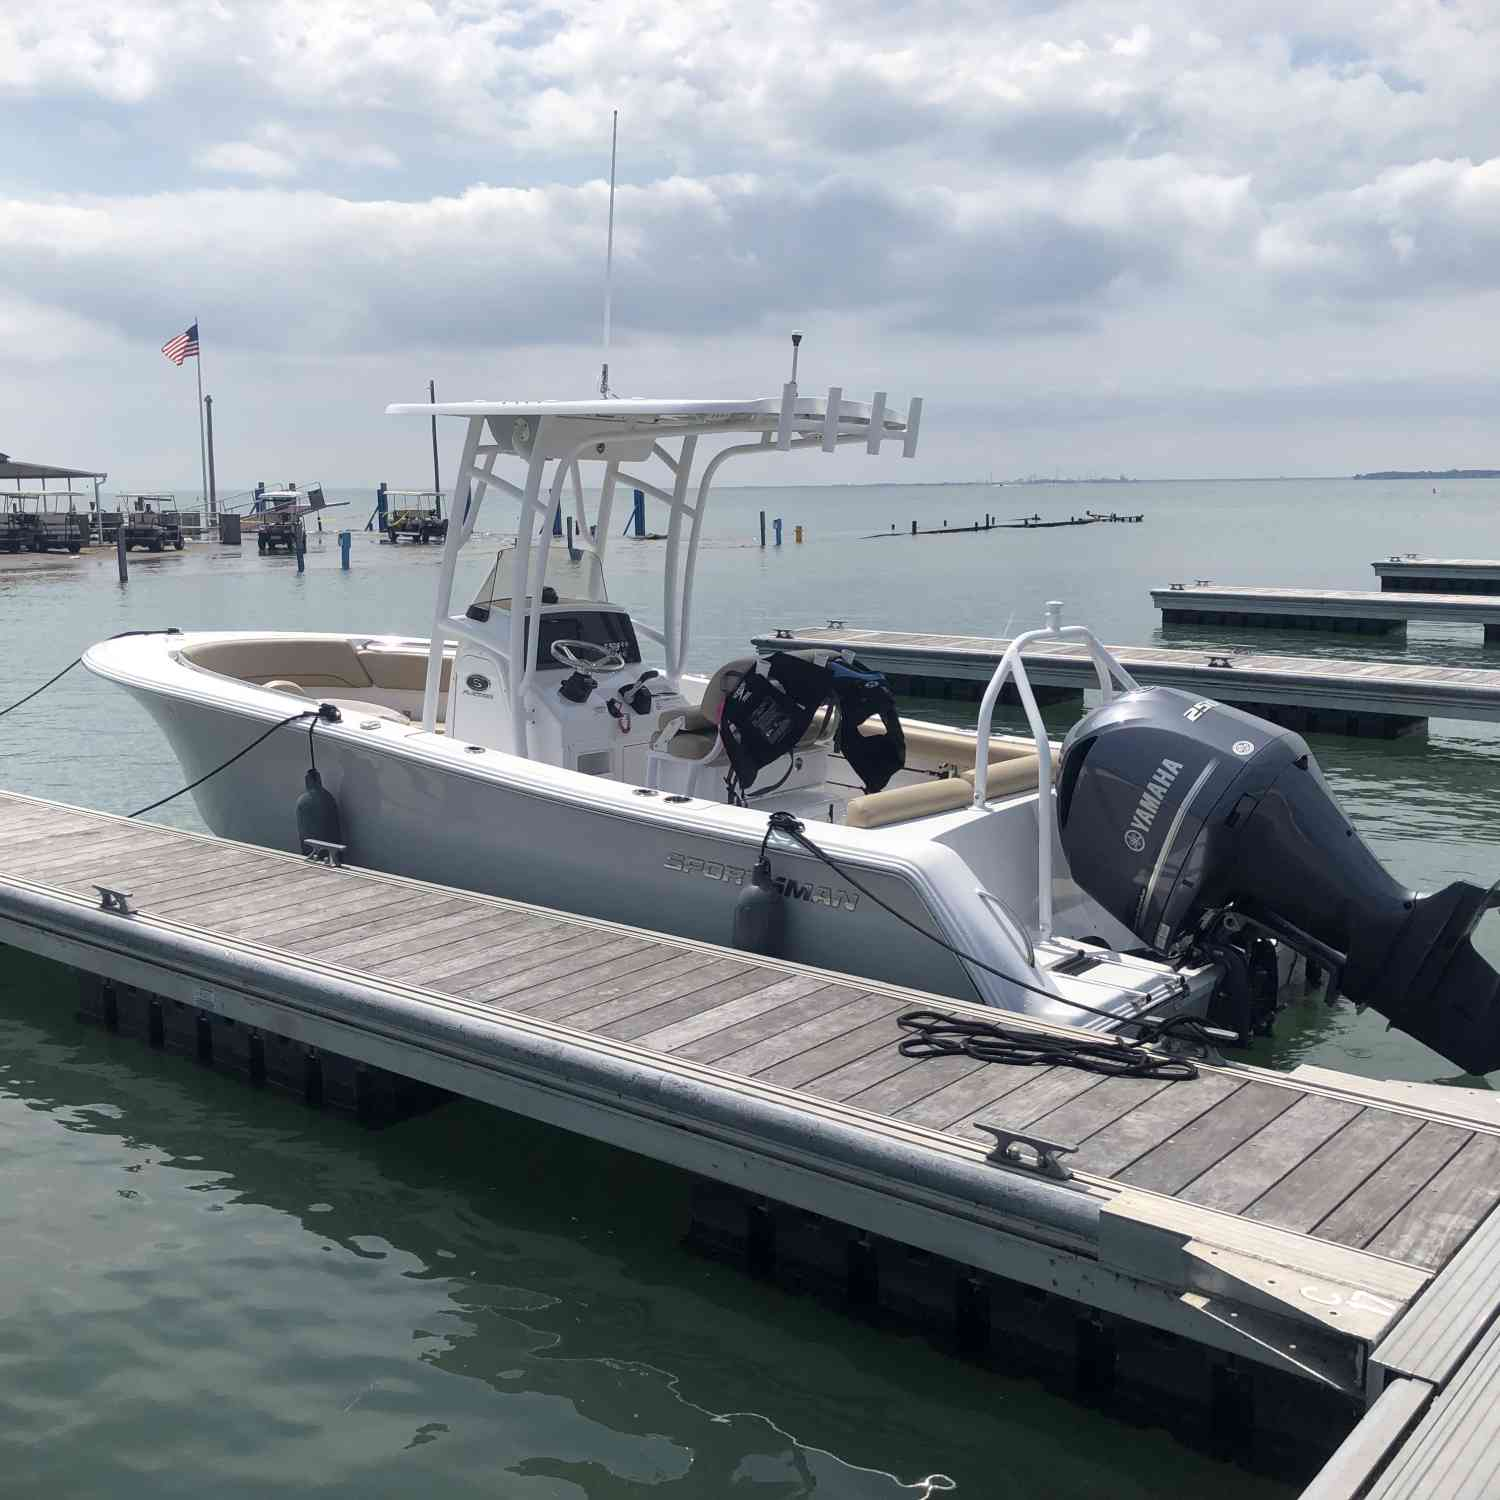 Title: First island hop - On board their Sportsman Heritage 231 Center Console - Location: Kelley's island Lake Erie. Participating in the Photo Contest #SportsmanJuly2019